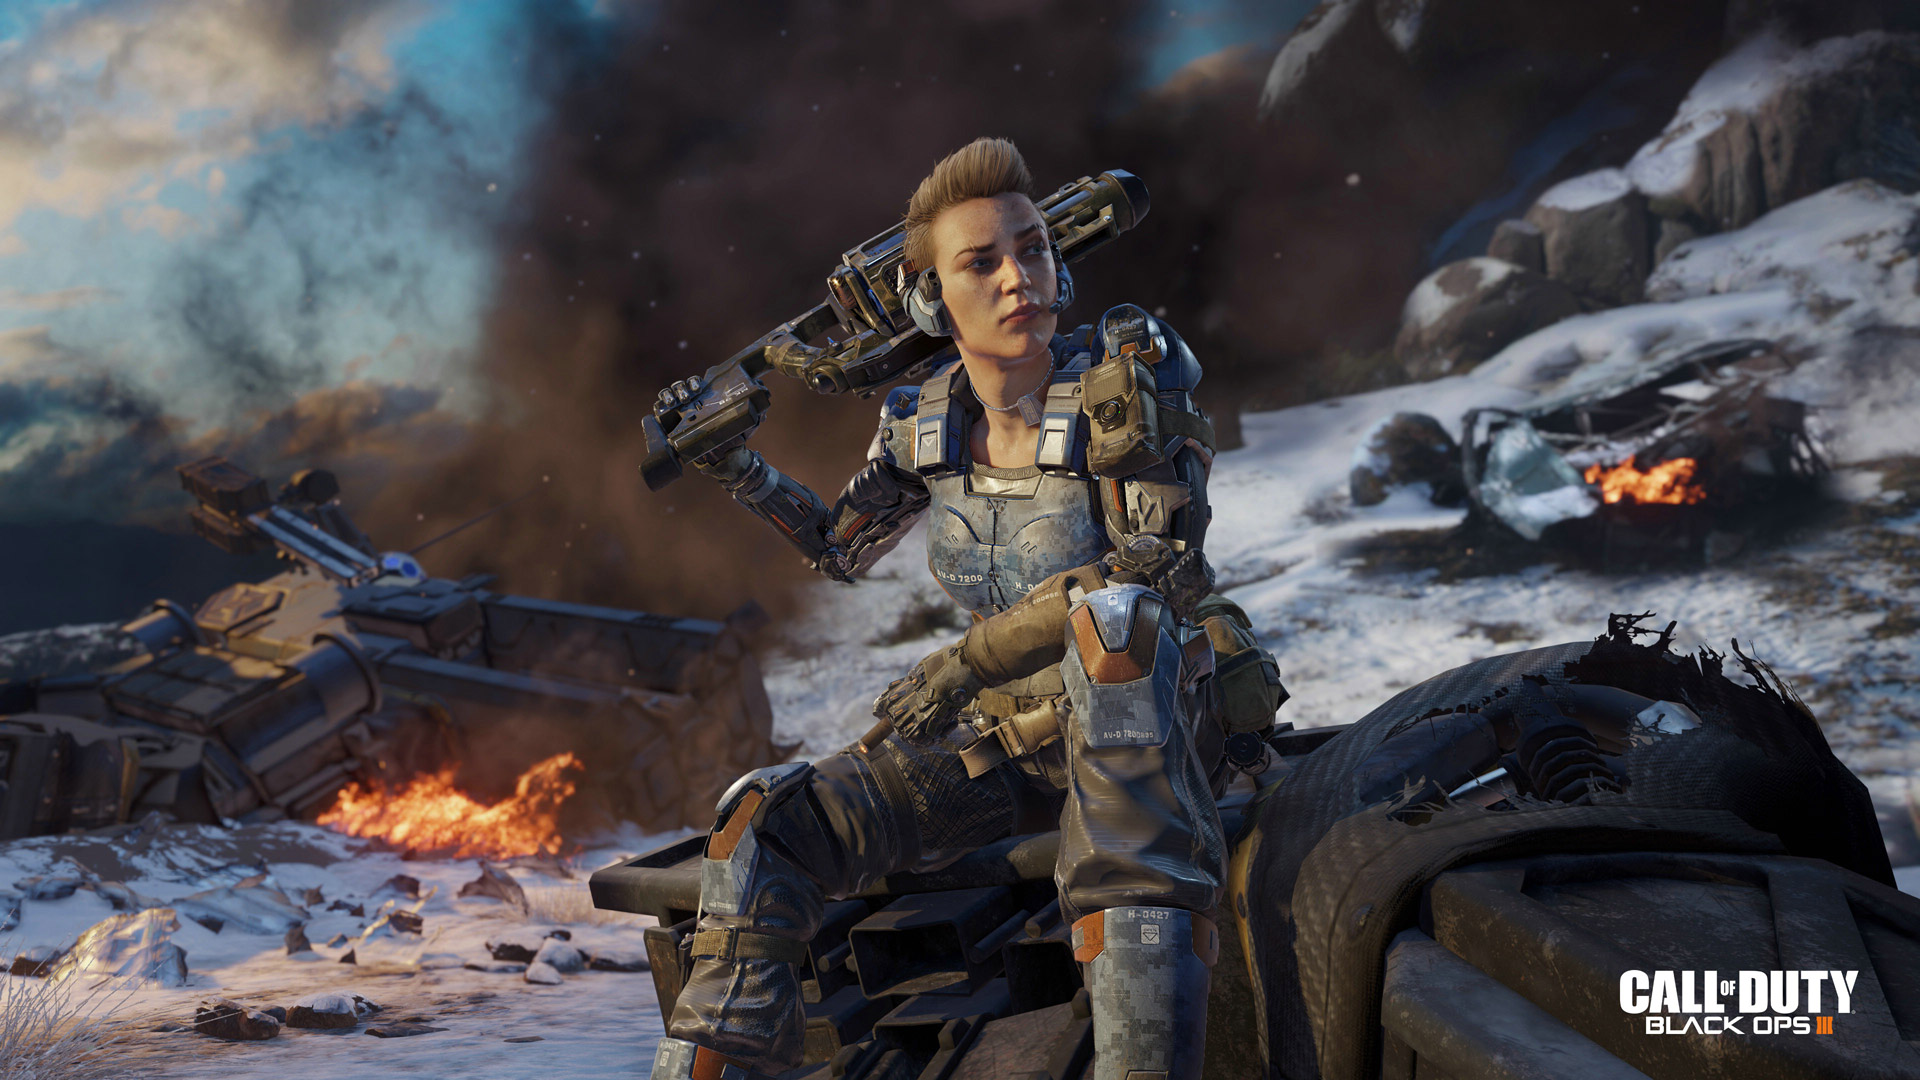 Call Of Duty Black Ops 3 Wallpaper 17